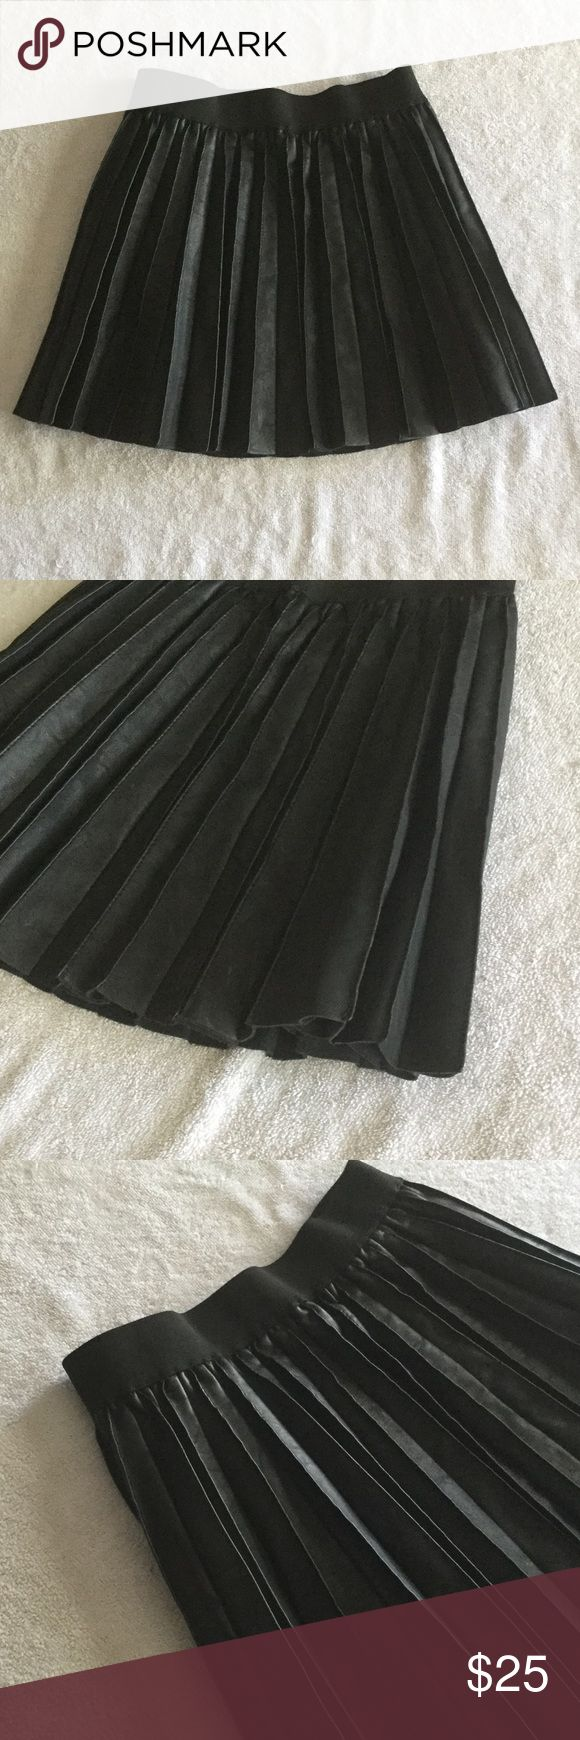 ASOS Black Skirts Good condition ASOS Skirts